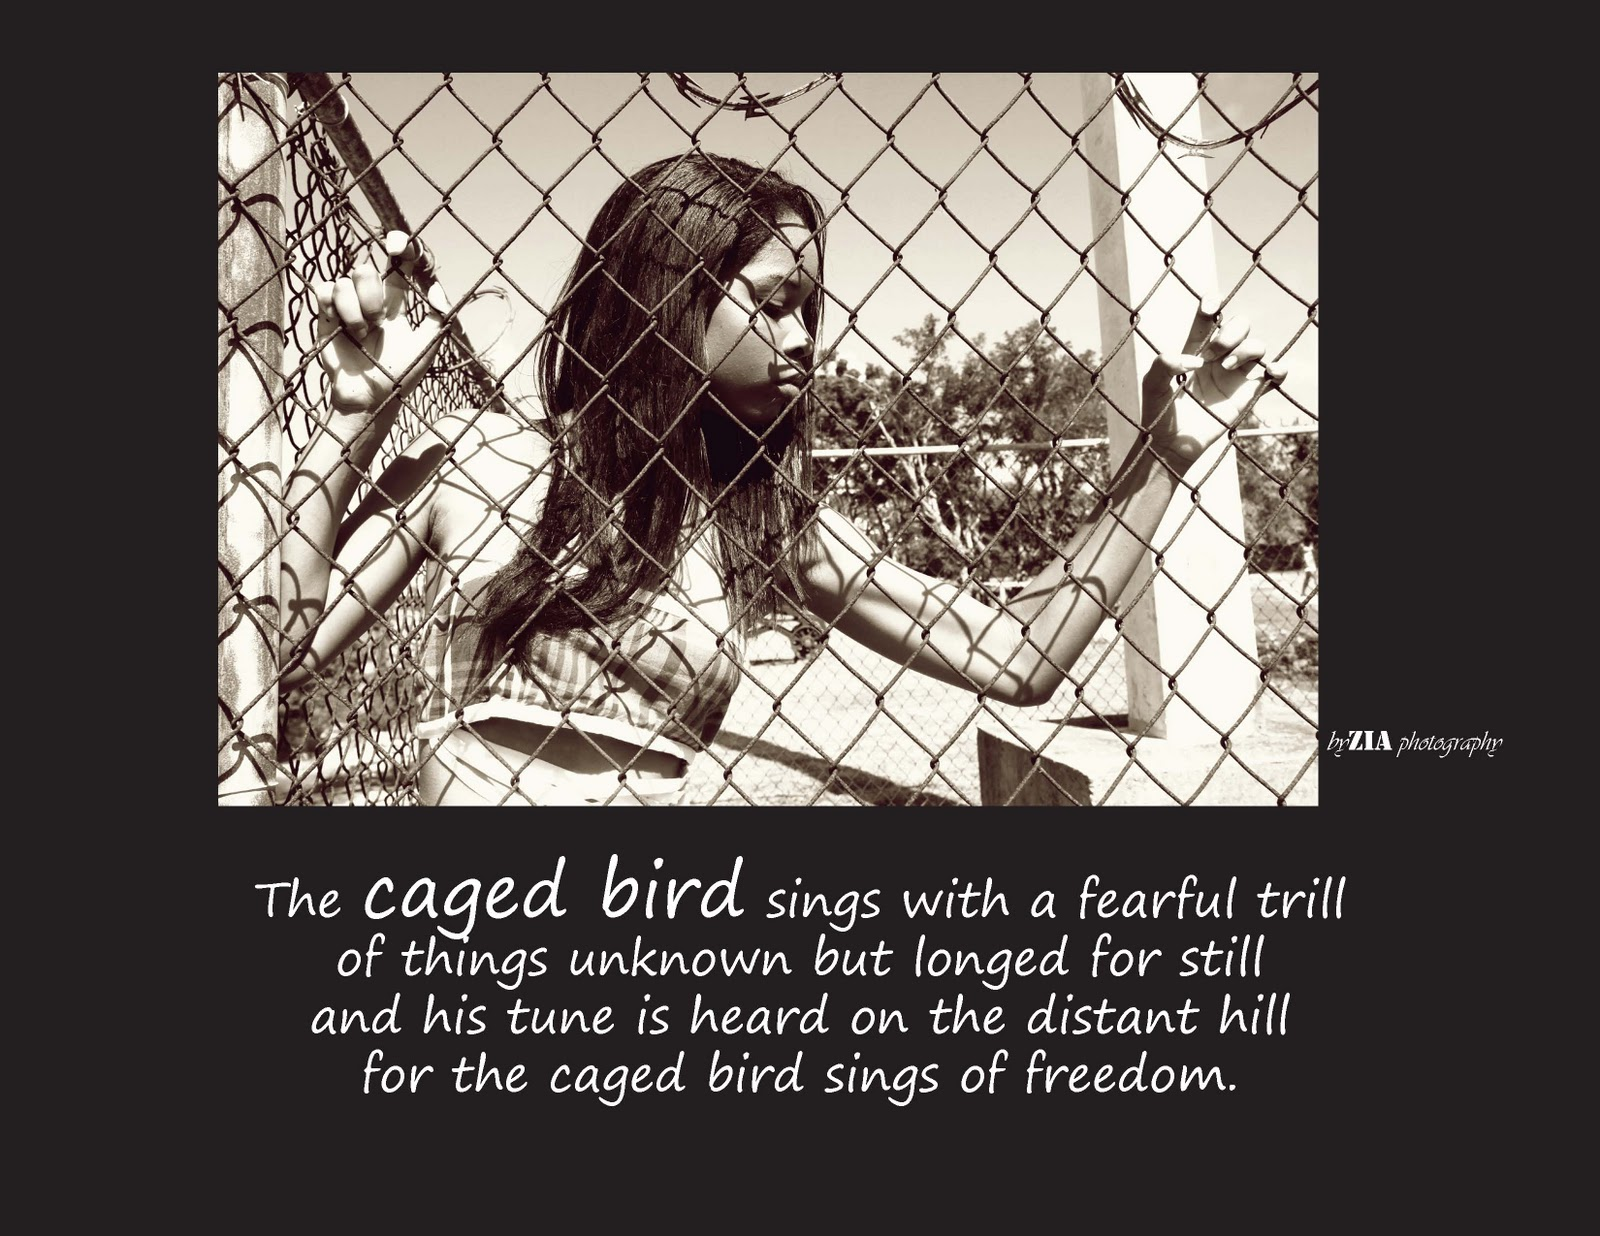 Zia S Stuff I Know Why The Caged Bird Sings